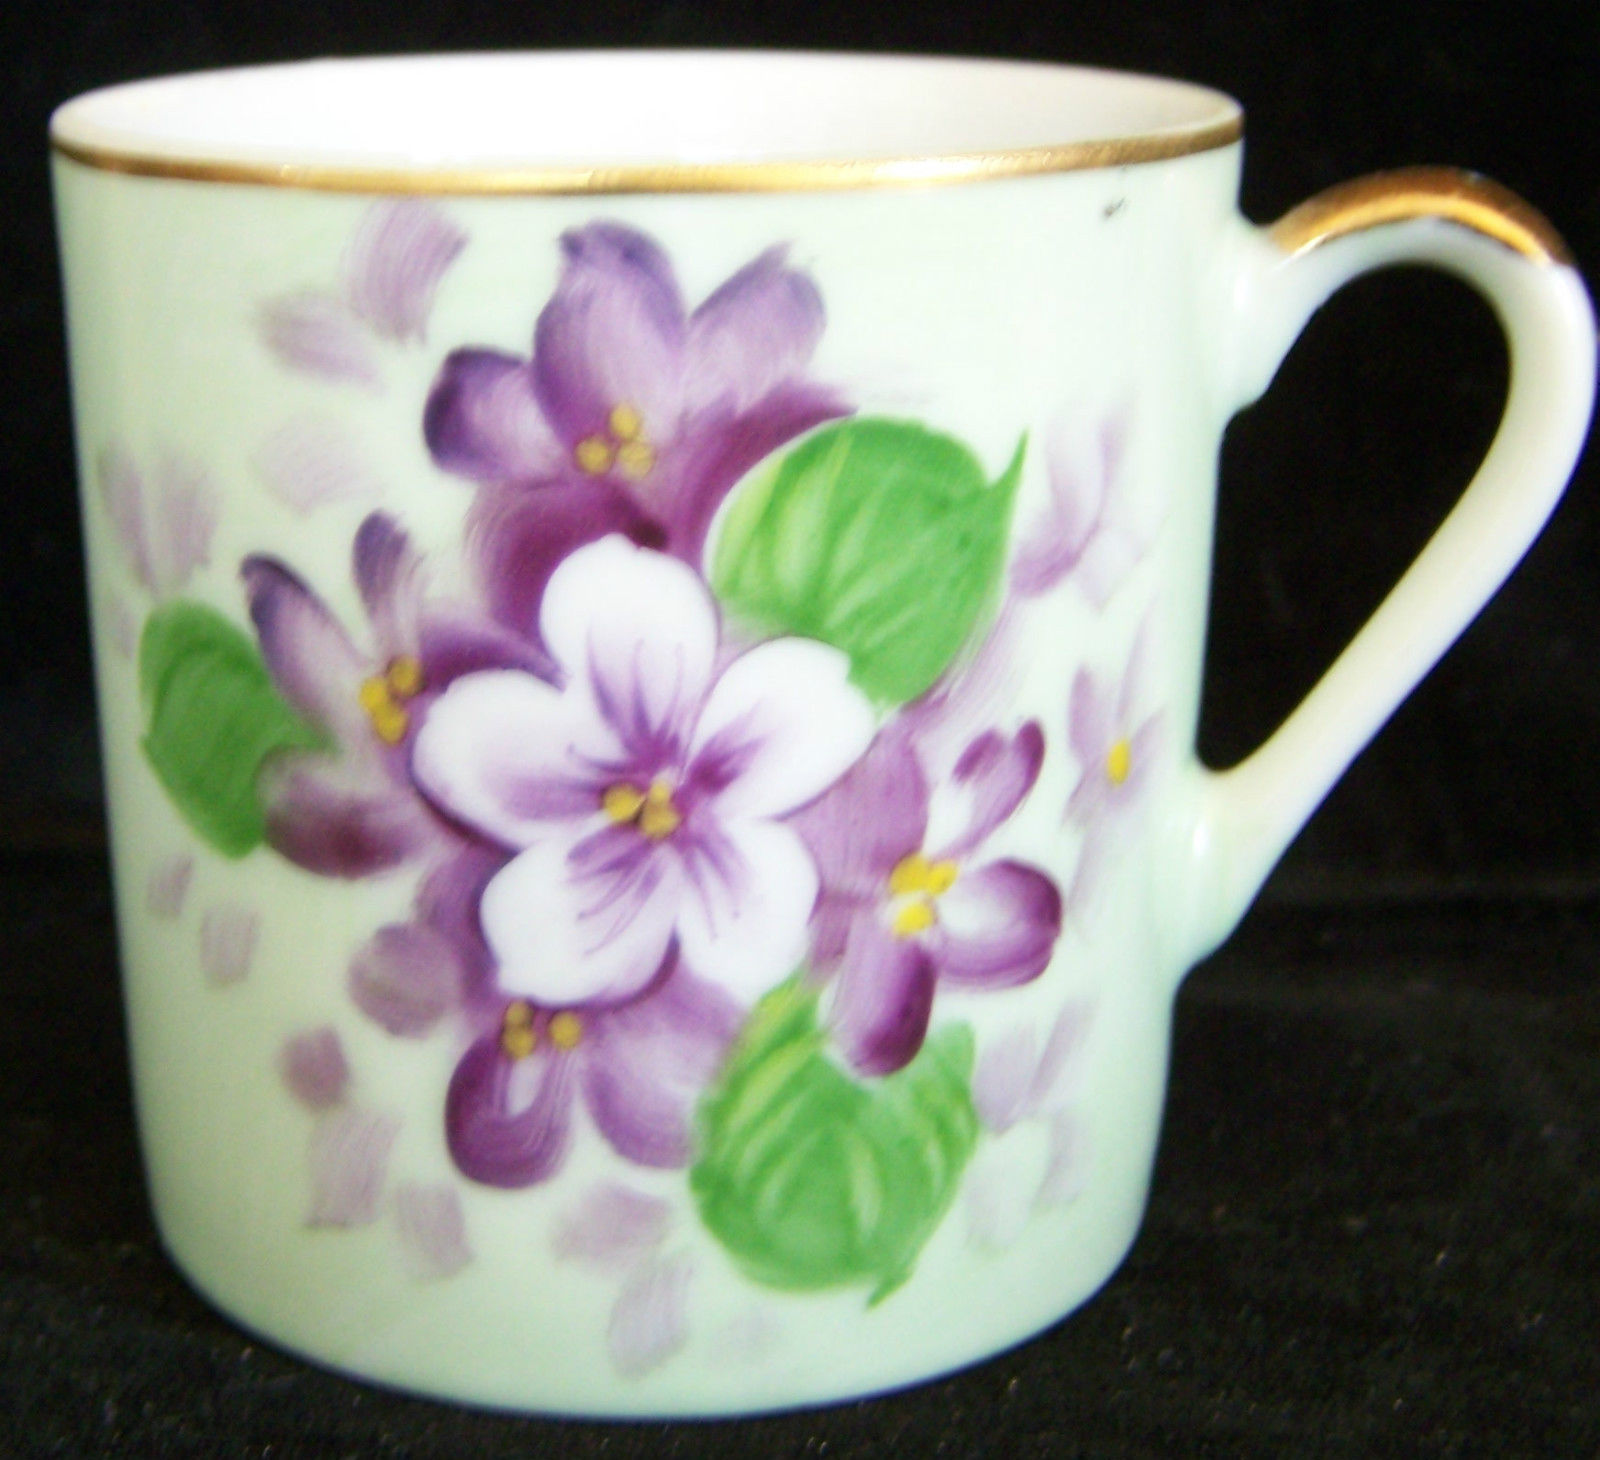 Primary image for LEFTON HAND PAINTED VIOLETS CHINA DEMITASSE CUP Beautiful Vintage Delicate!